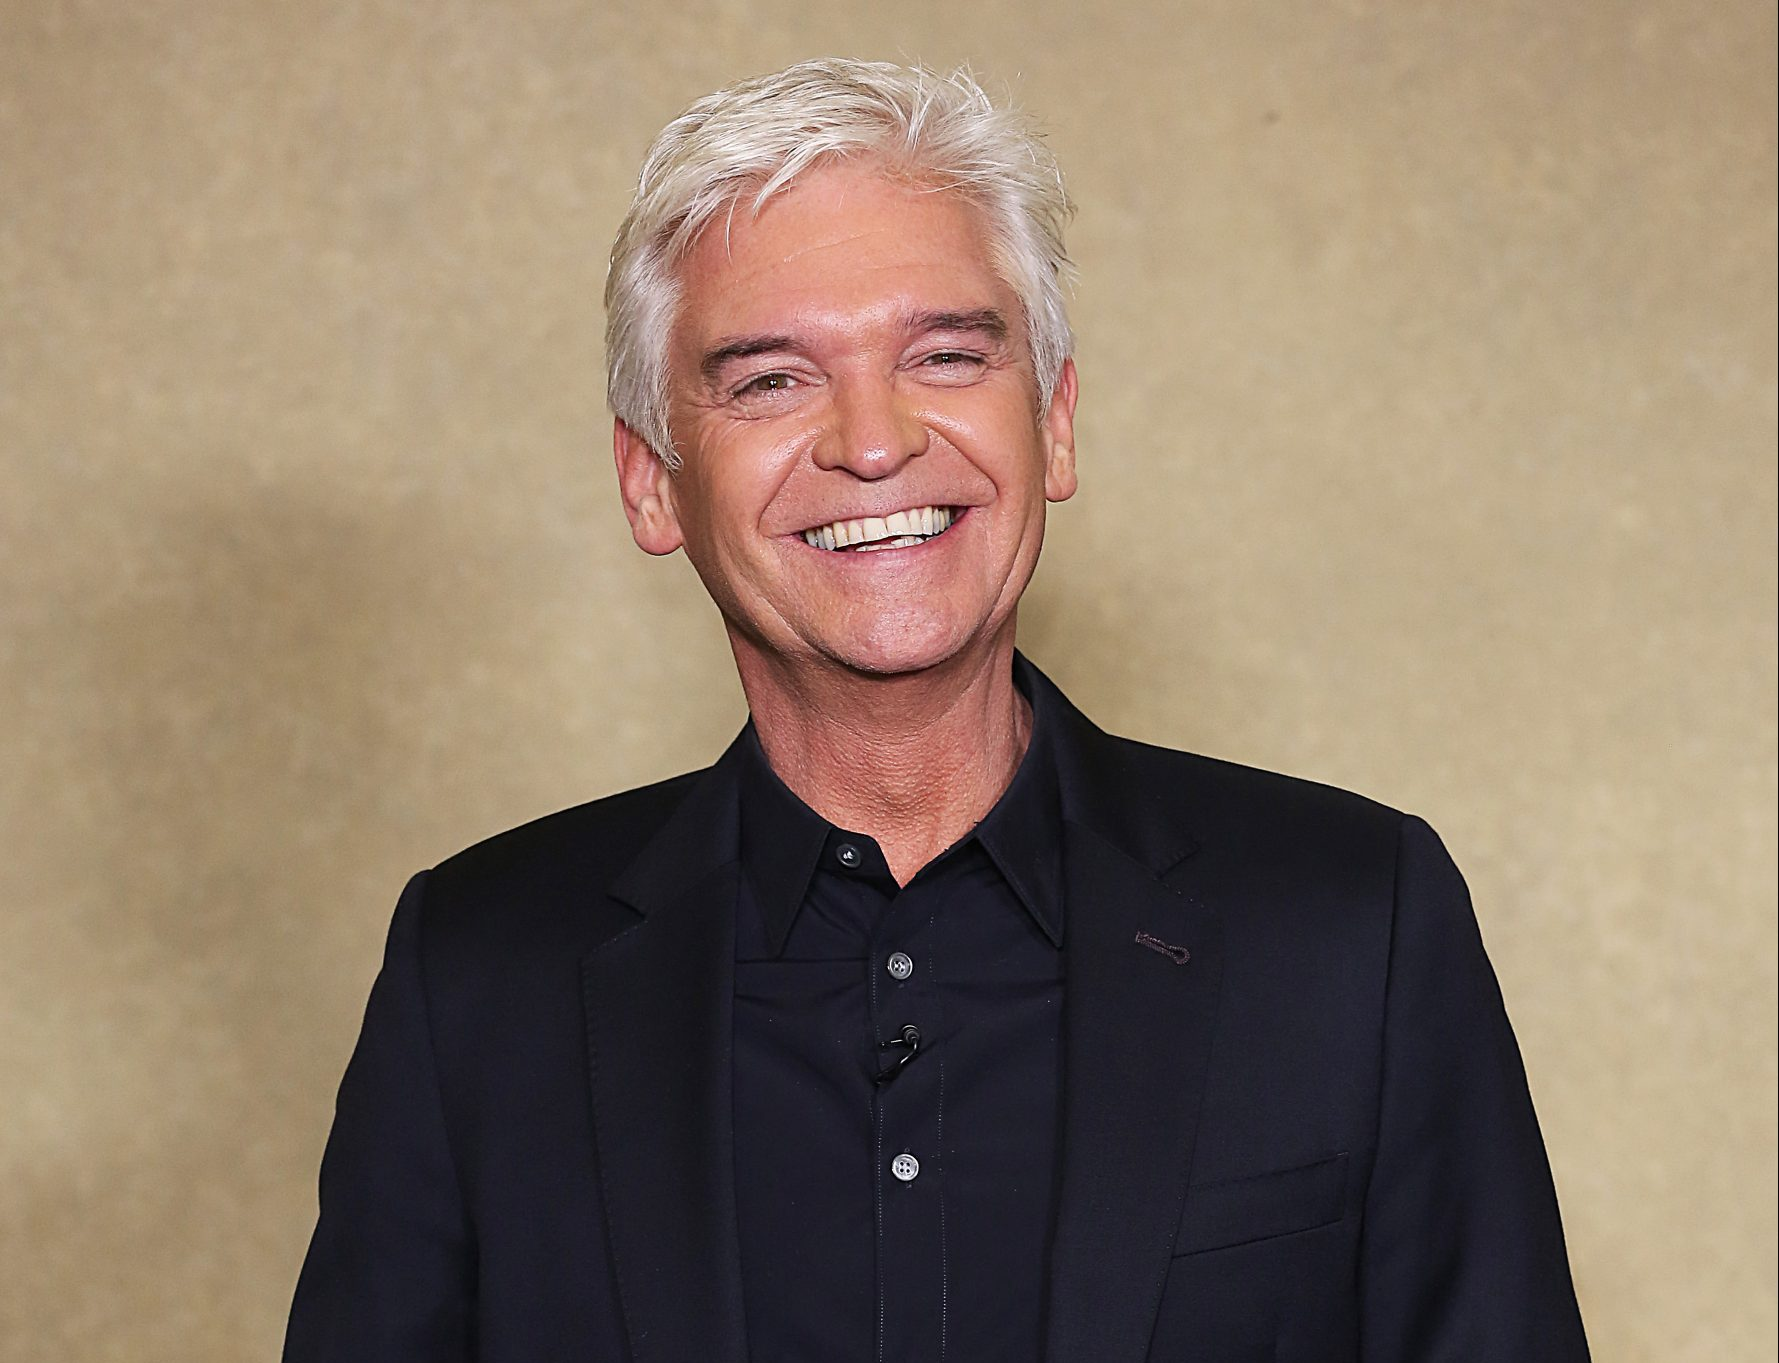 Phillip Schofield revealed that he is gay earlier this year (Credit: Splash News)